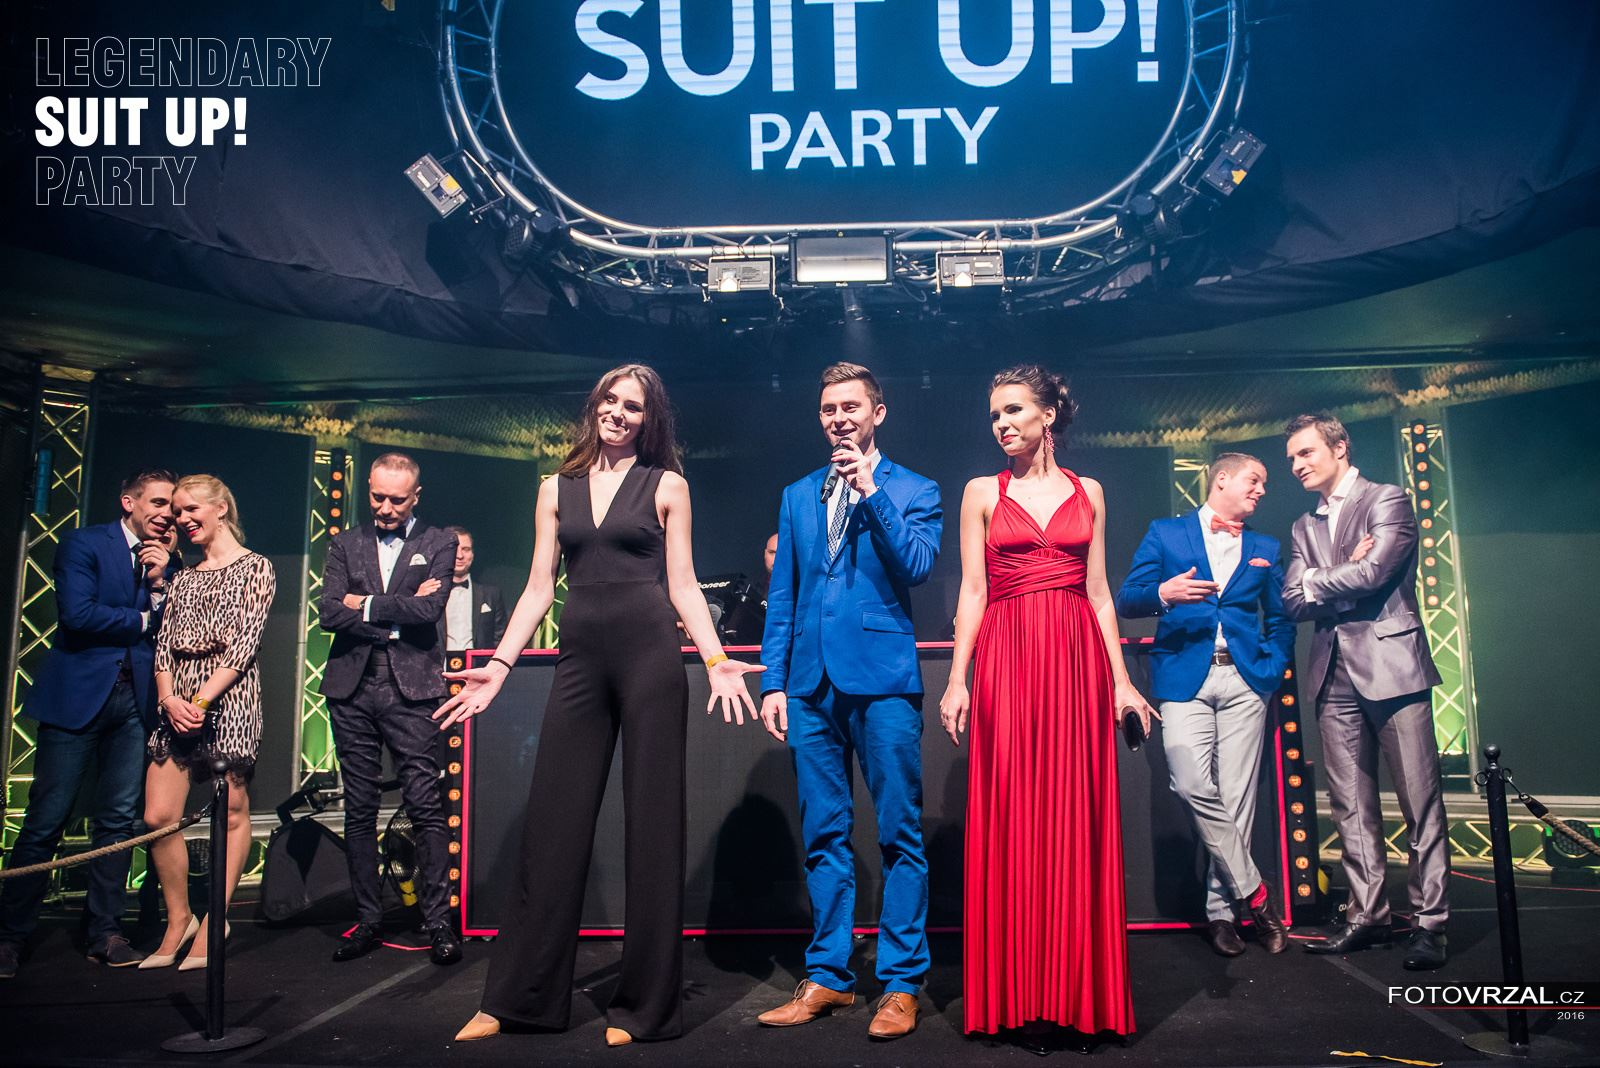 Suit Up Party